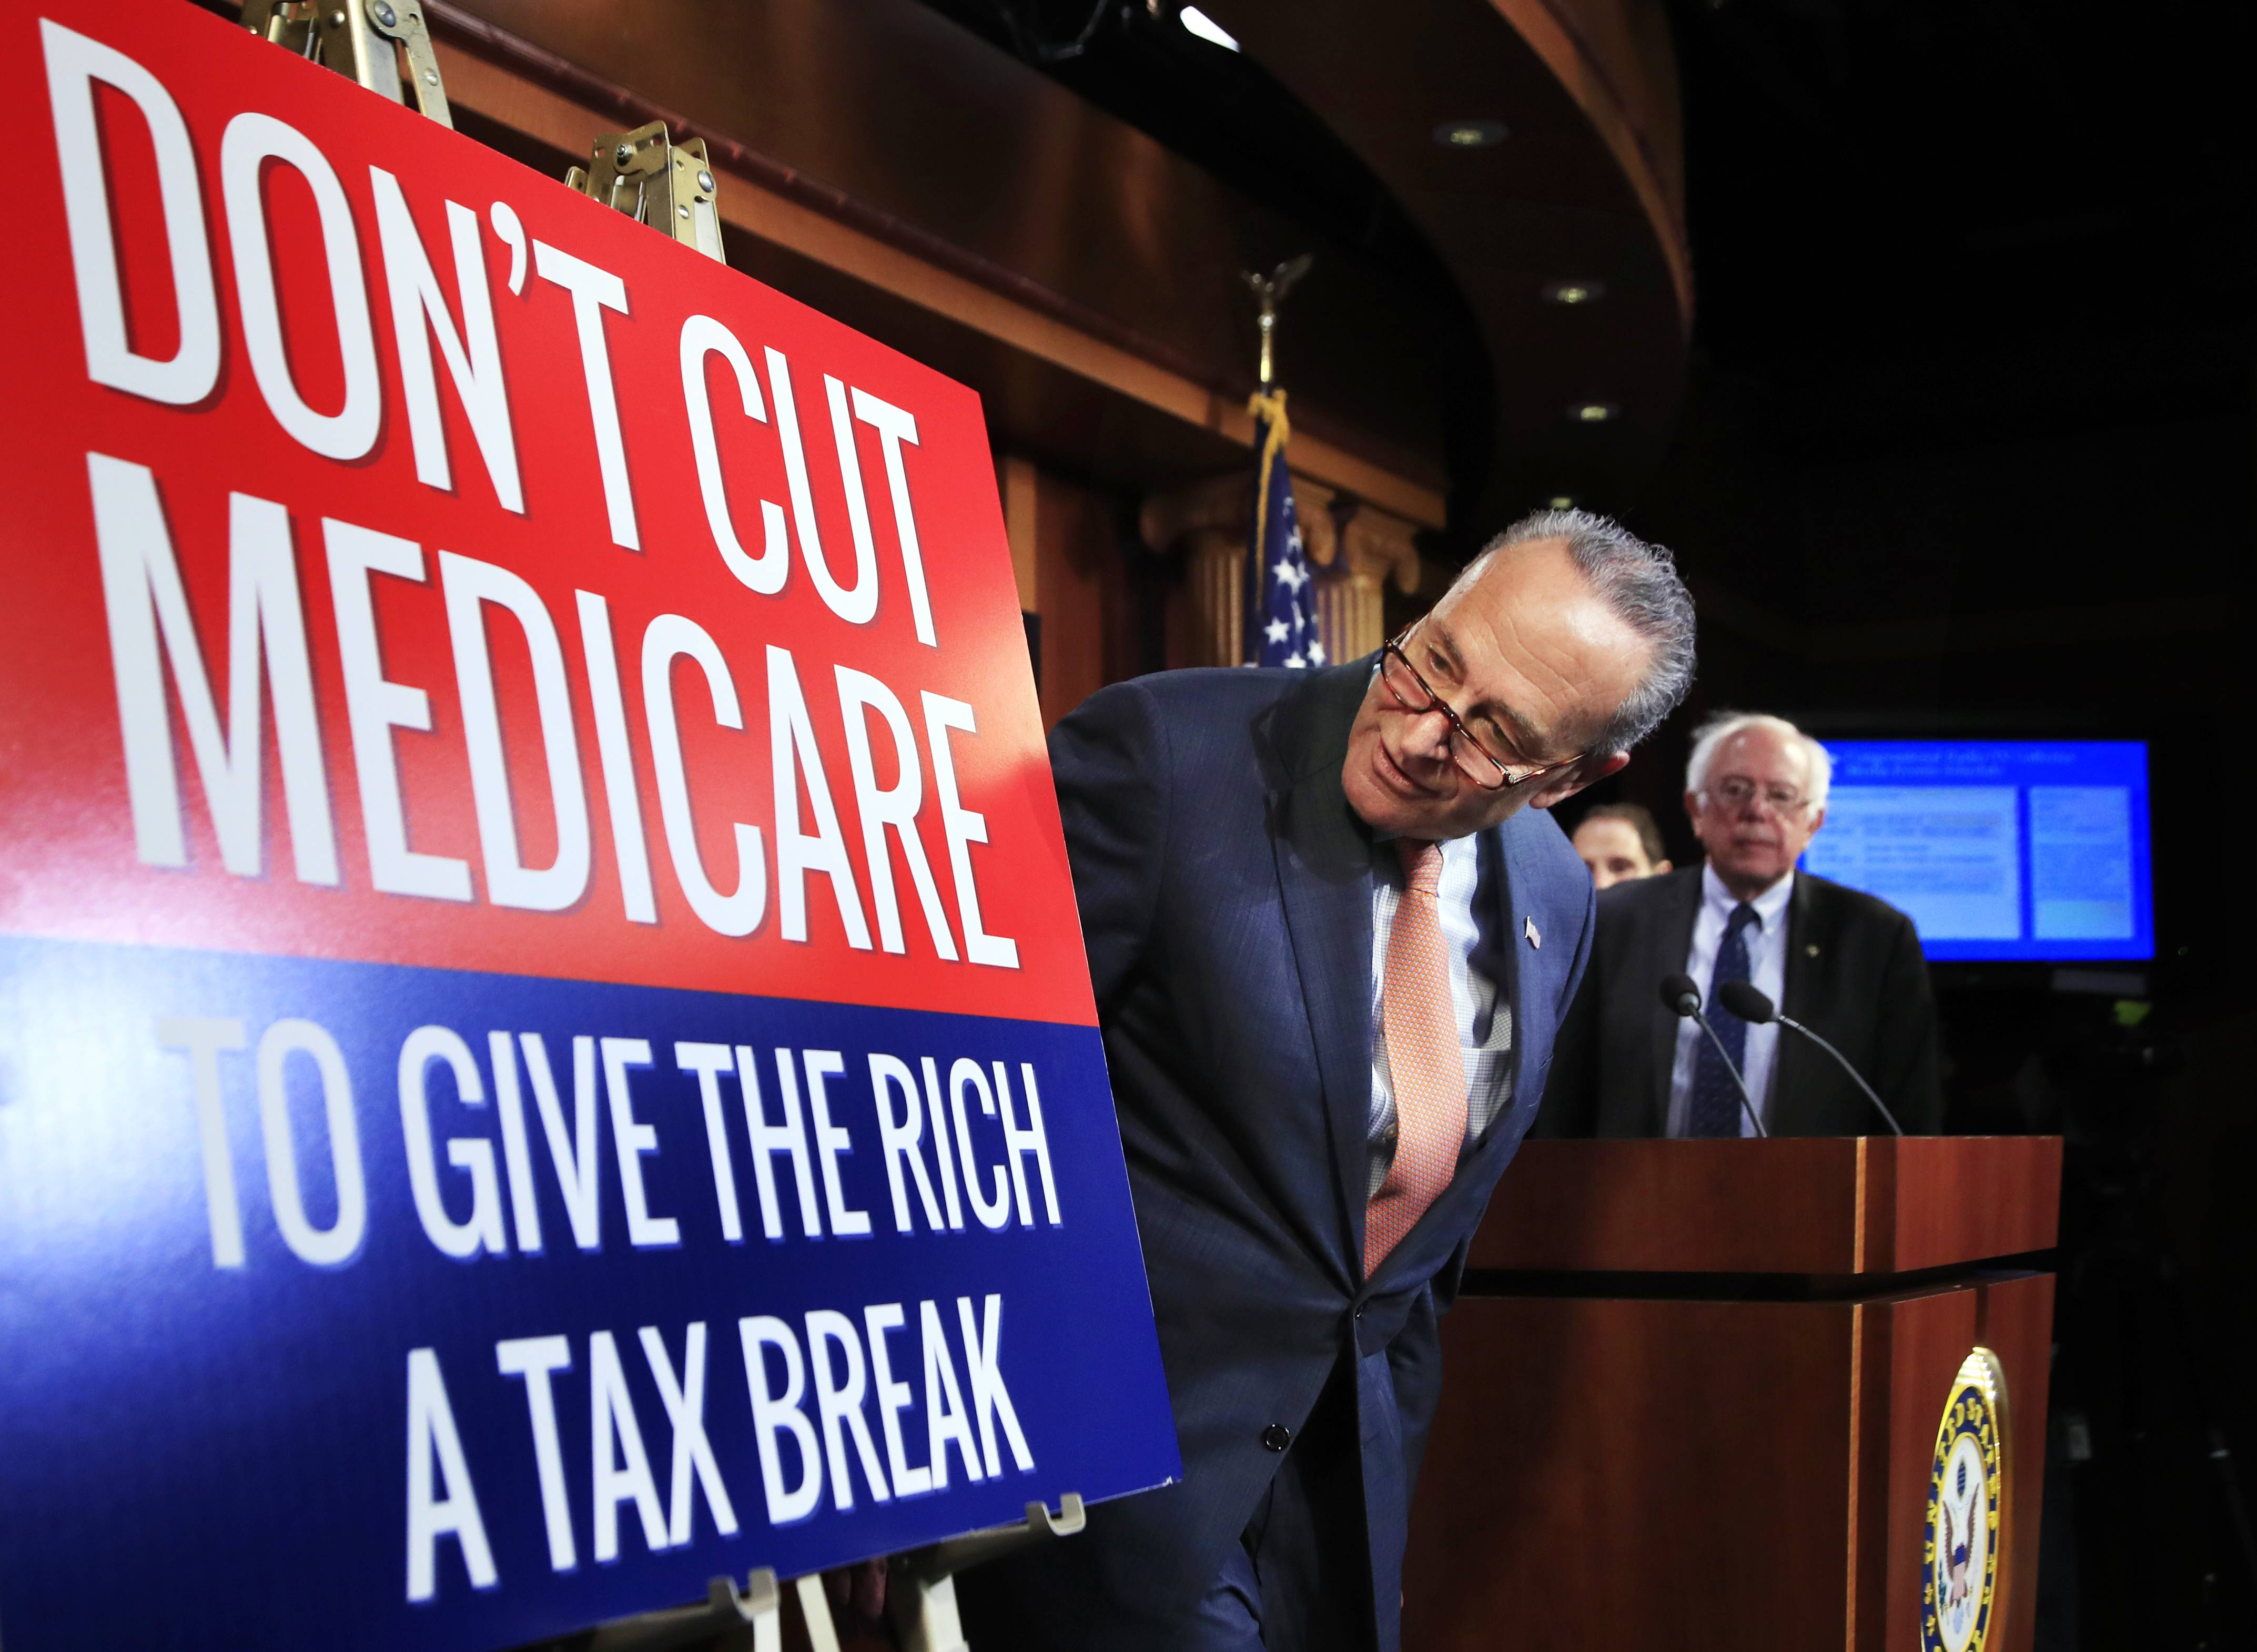 Senate Minority Leader Chuck Schumer of New York, followed by Sen. Bernie Sanders, I-Vt., look at a poster at the start of a news conference on Capitol Hill in Washington, Wednesday, October 4, 2017, urging Republicans to abandon cuts to Medicare and Medicaid.